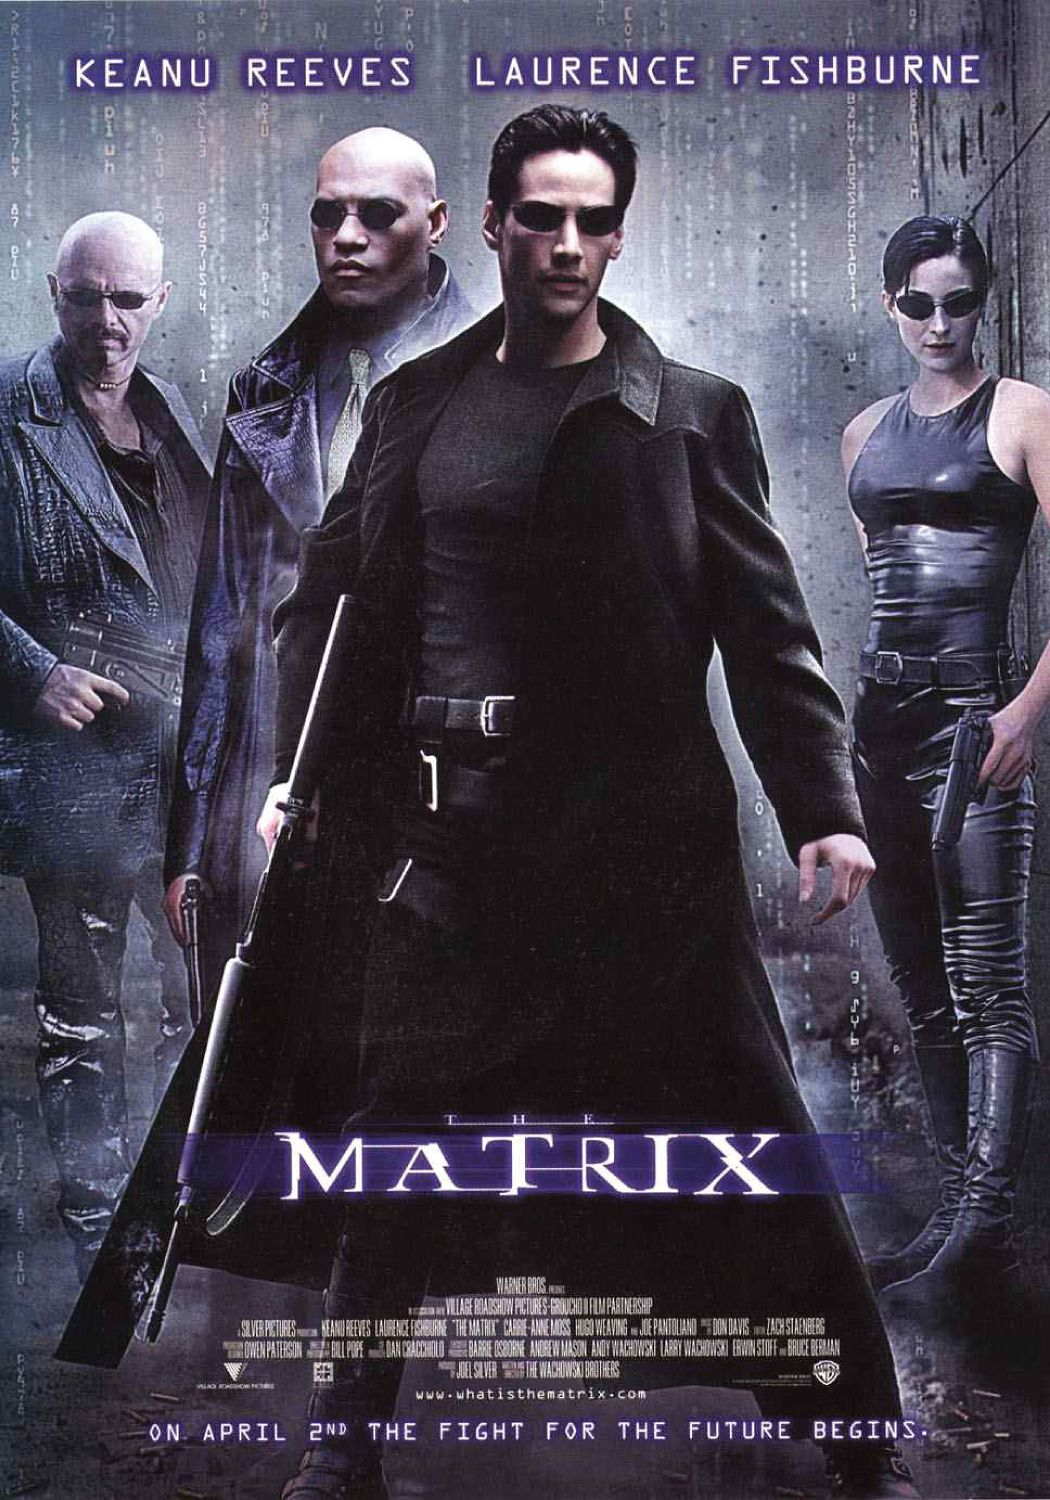 The theatrical release poster for The Matrix. It depicts the four main characters (from left to right: Cypher, Morpheus, Neo and Trinity).